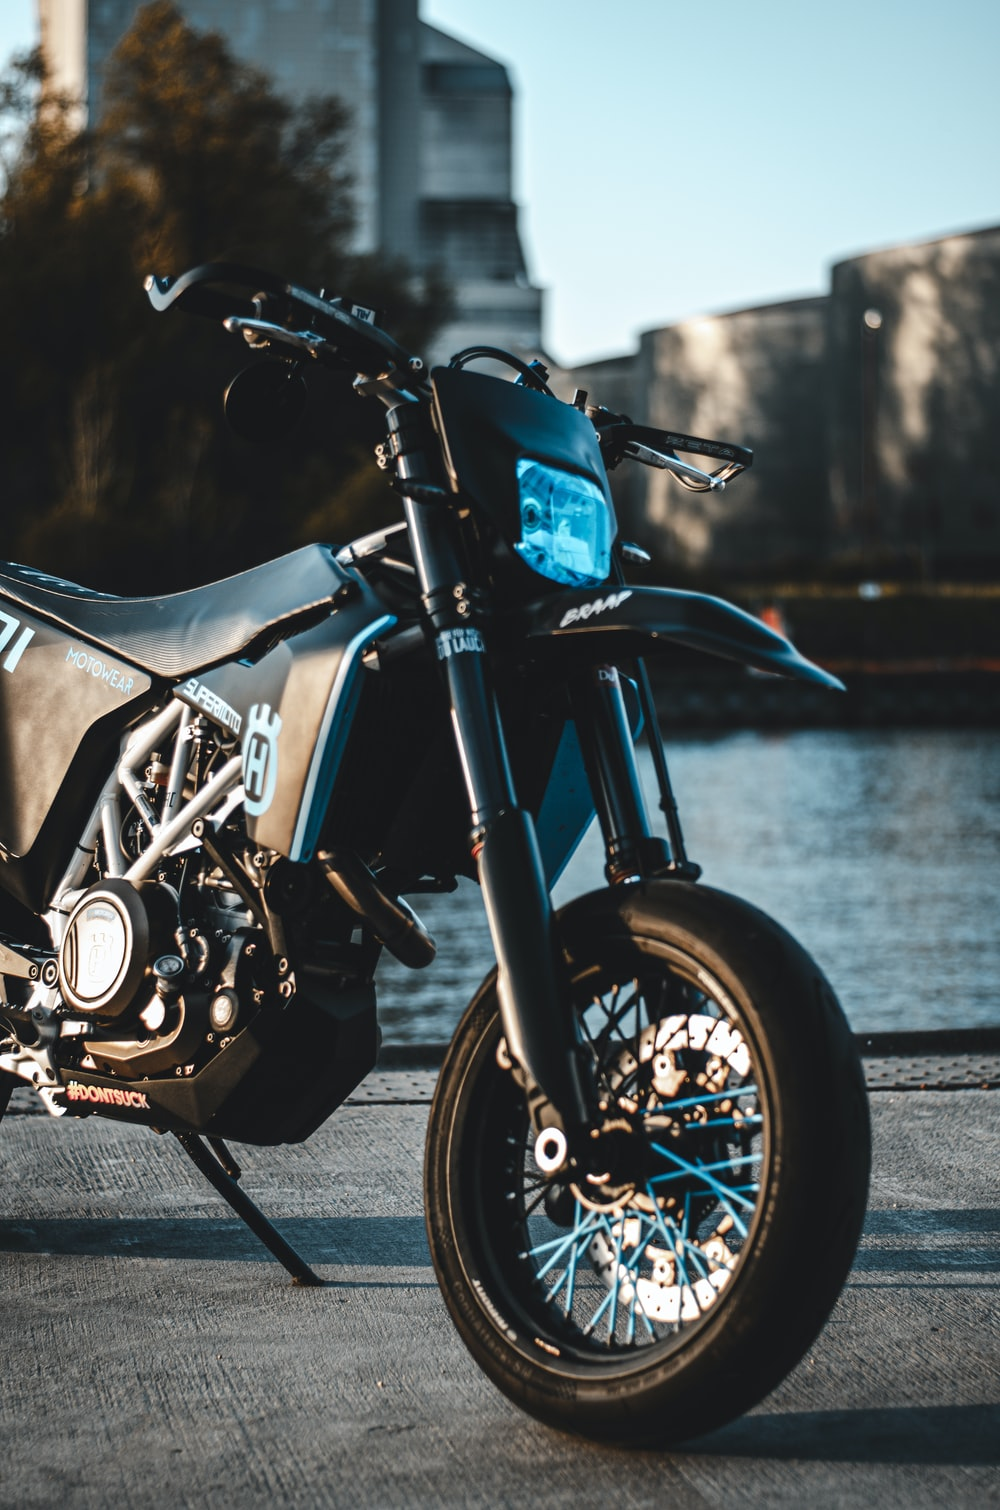 blue and black motorcycle on road during daytime